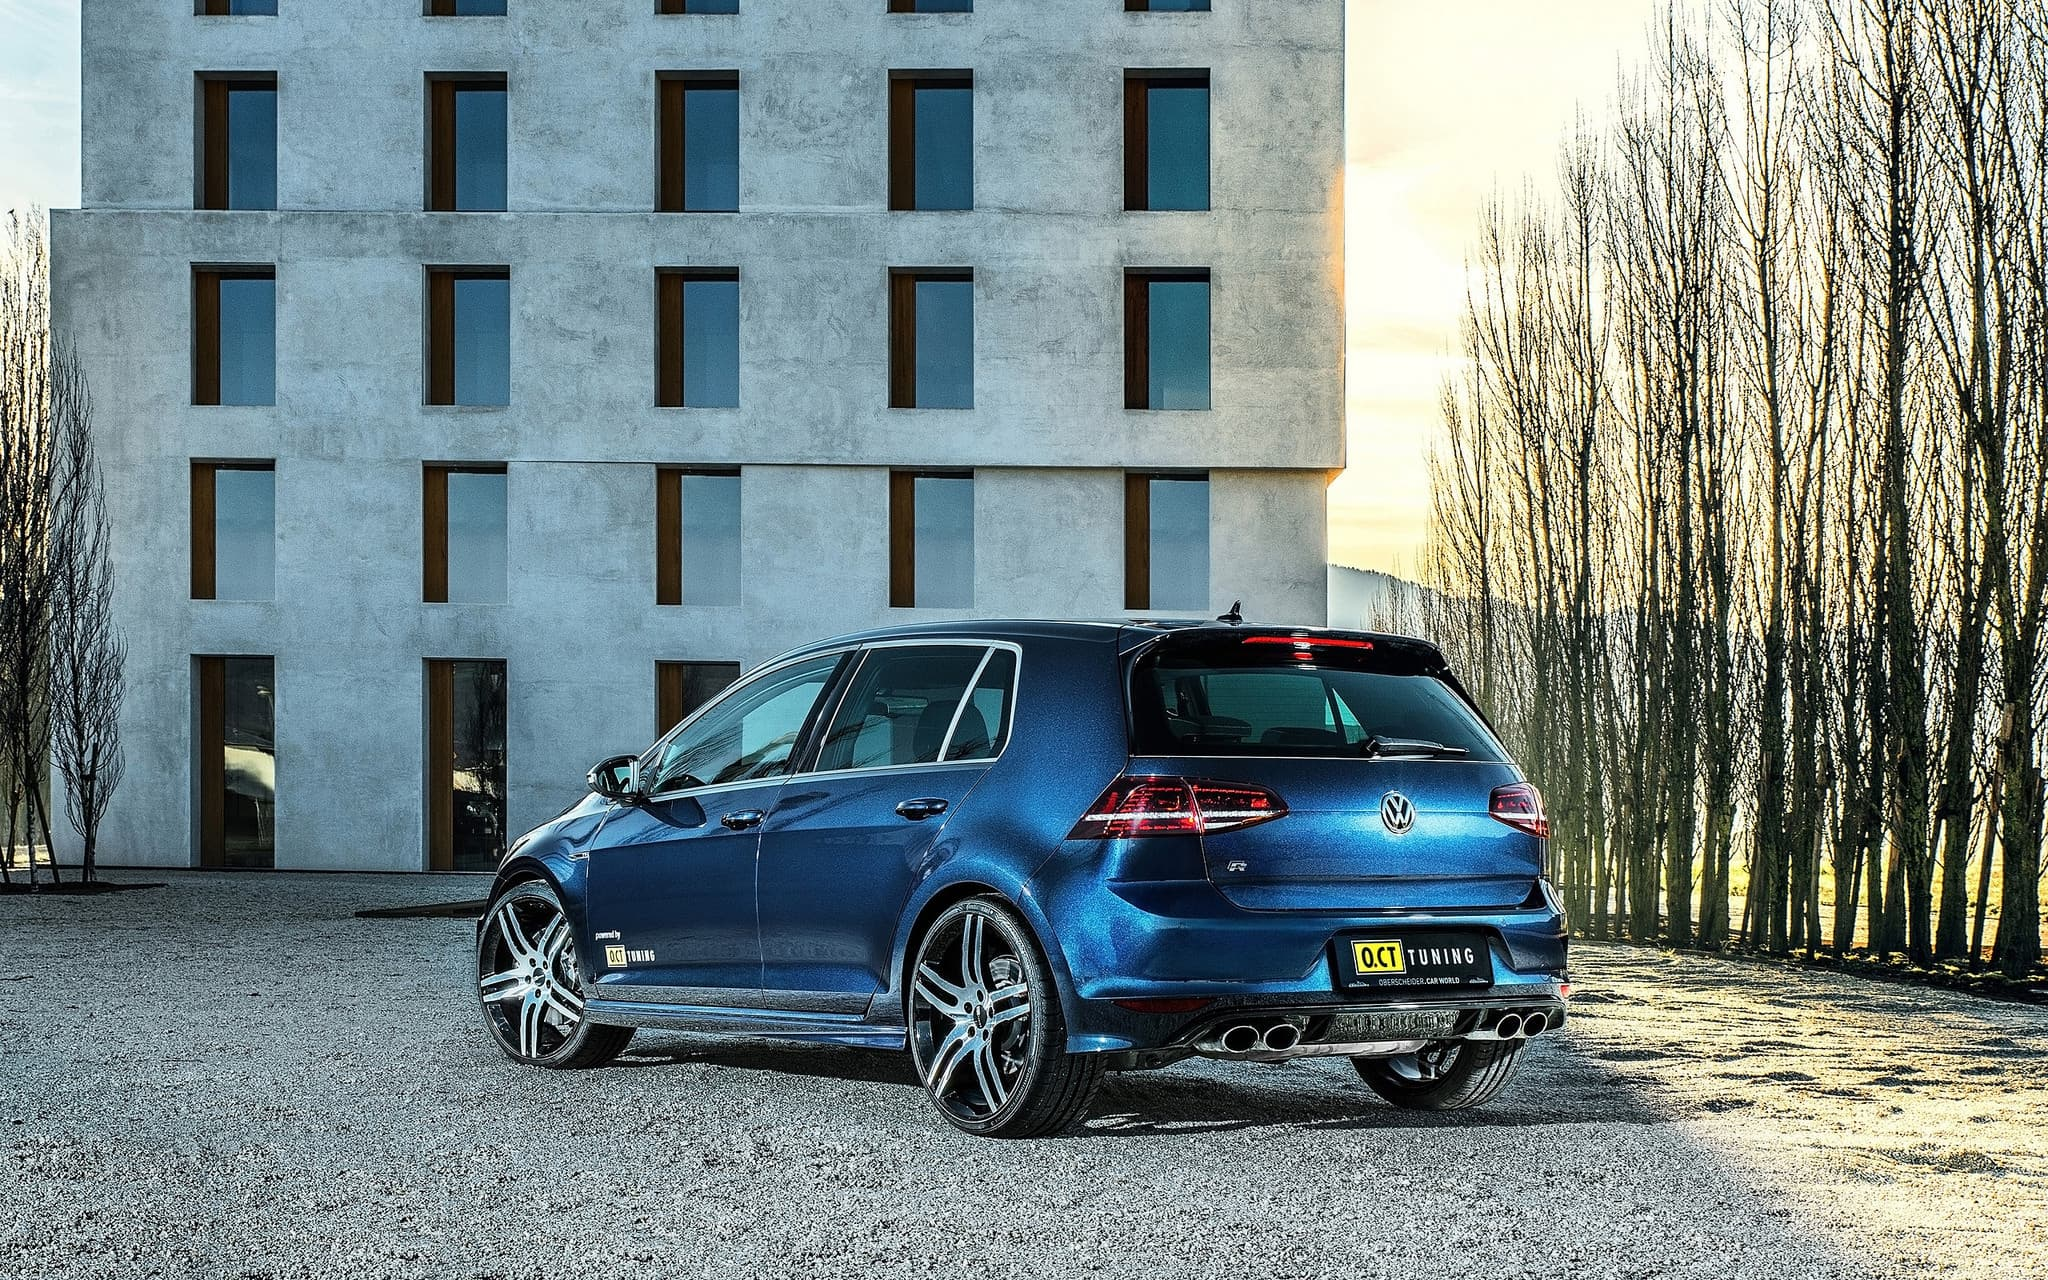 Volkswagen Golf 7 R 2016 Rear Wallpaper High Quality Hd